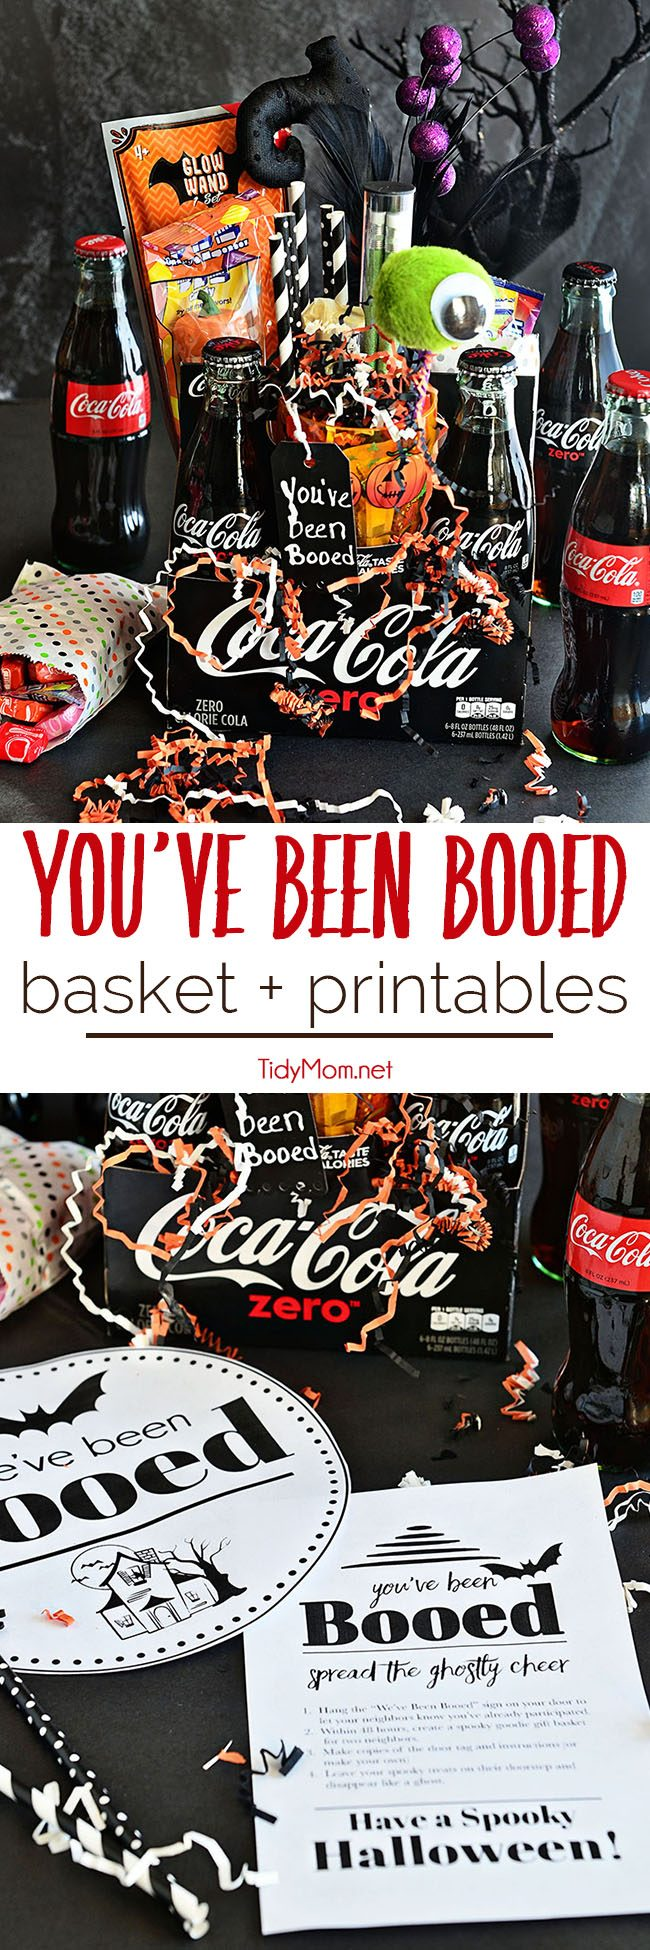 Have fun with your neighbors – You've Been BOOed!  This Halloween surprise is fun way to create excitement and smiles around your neighborhood.You've Been Booed free printables for Halloween Boo Basket at TidyMom.net